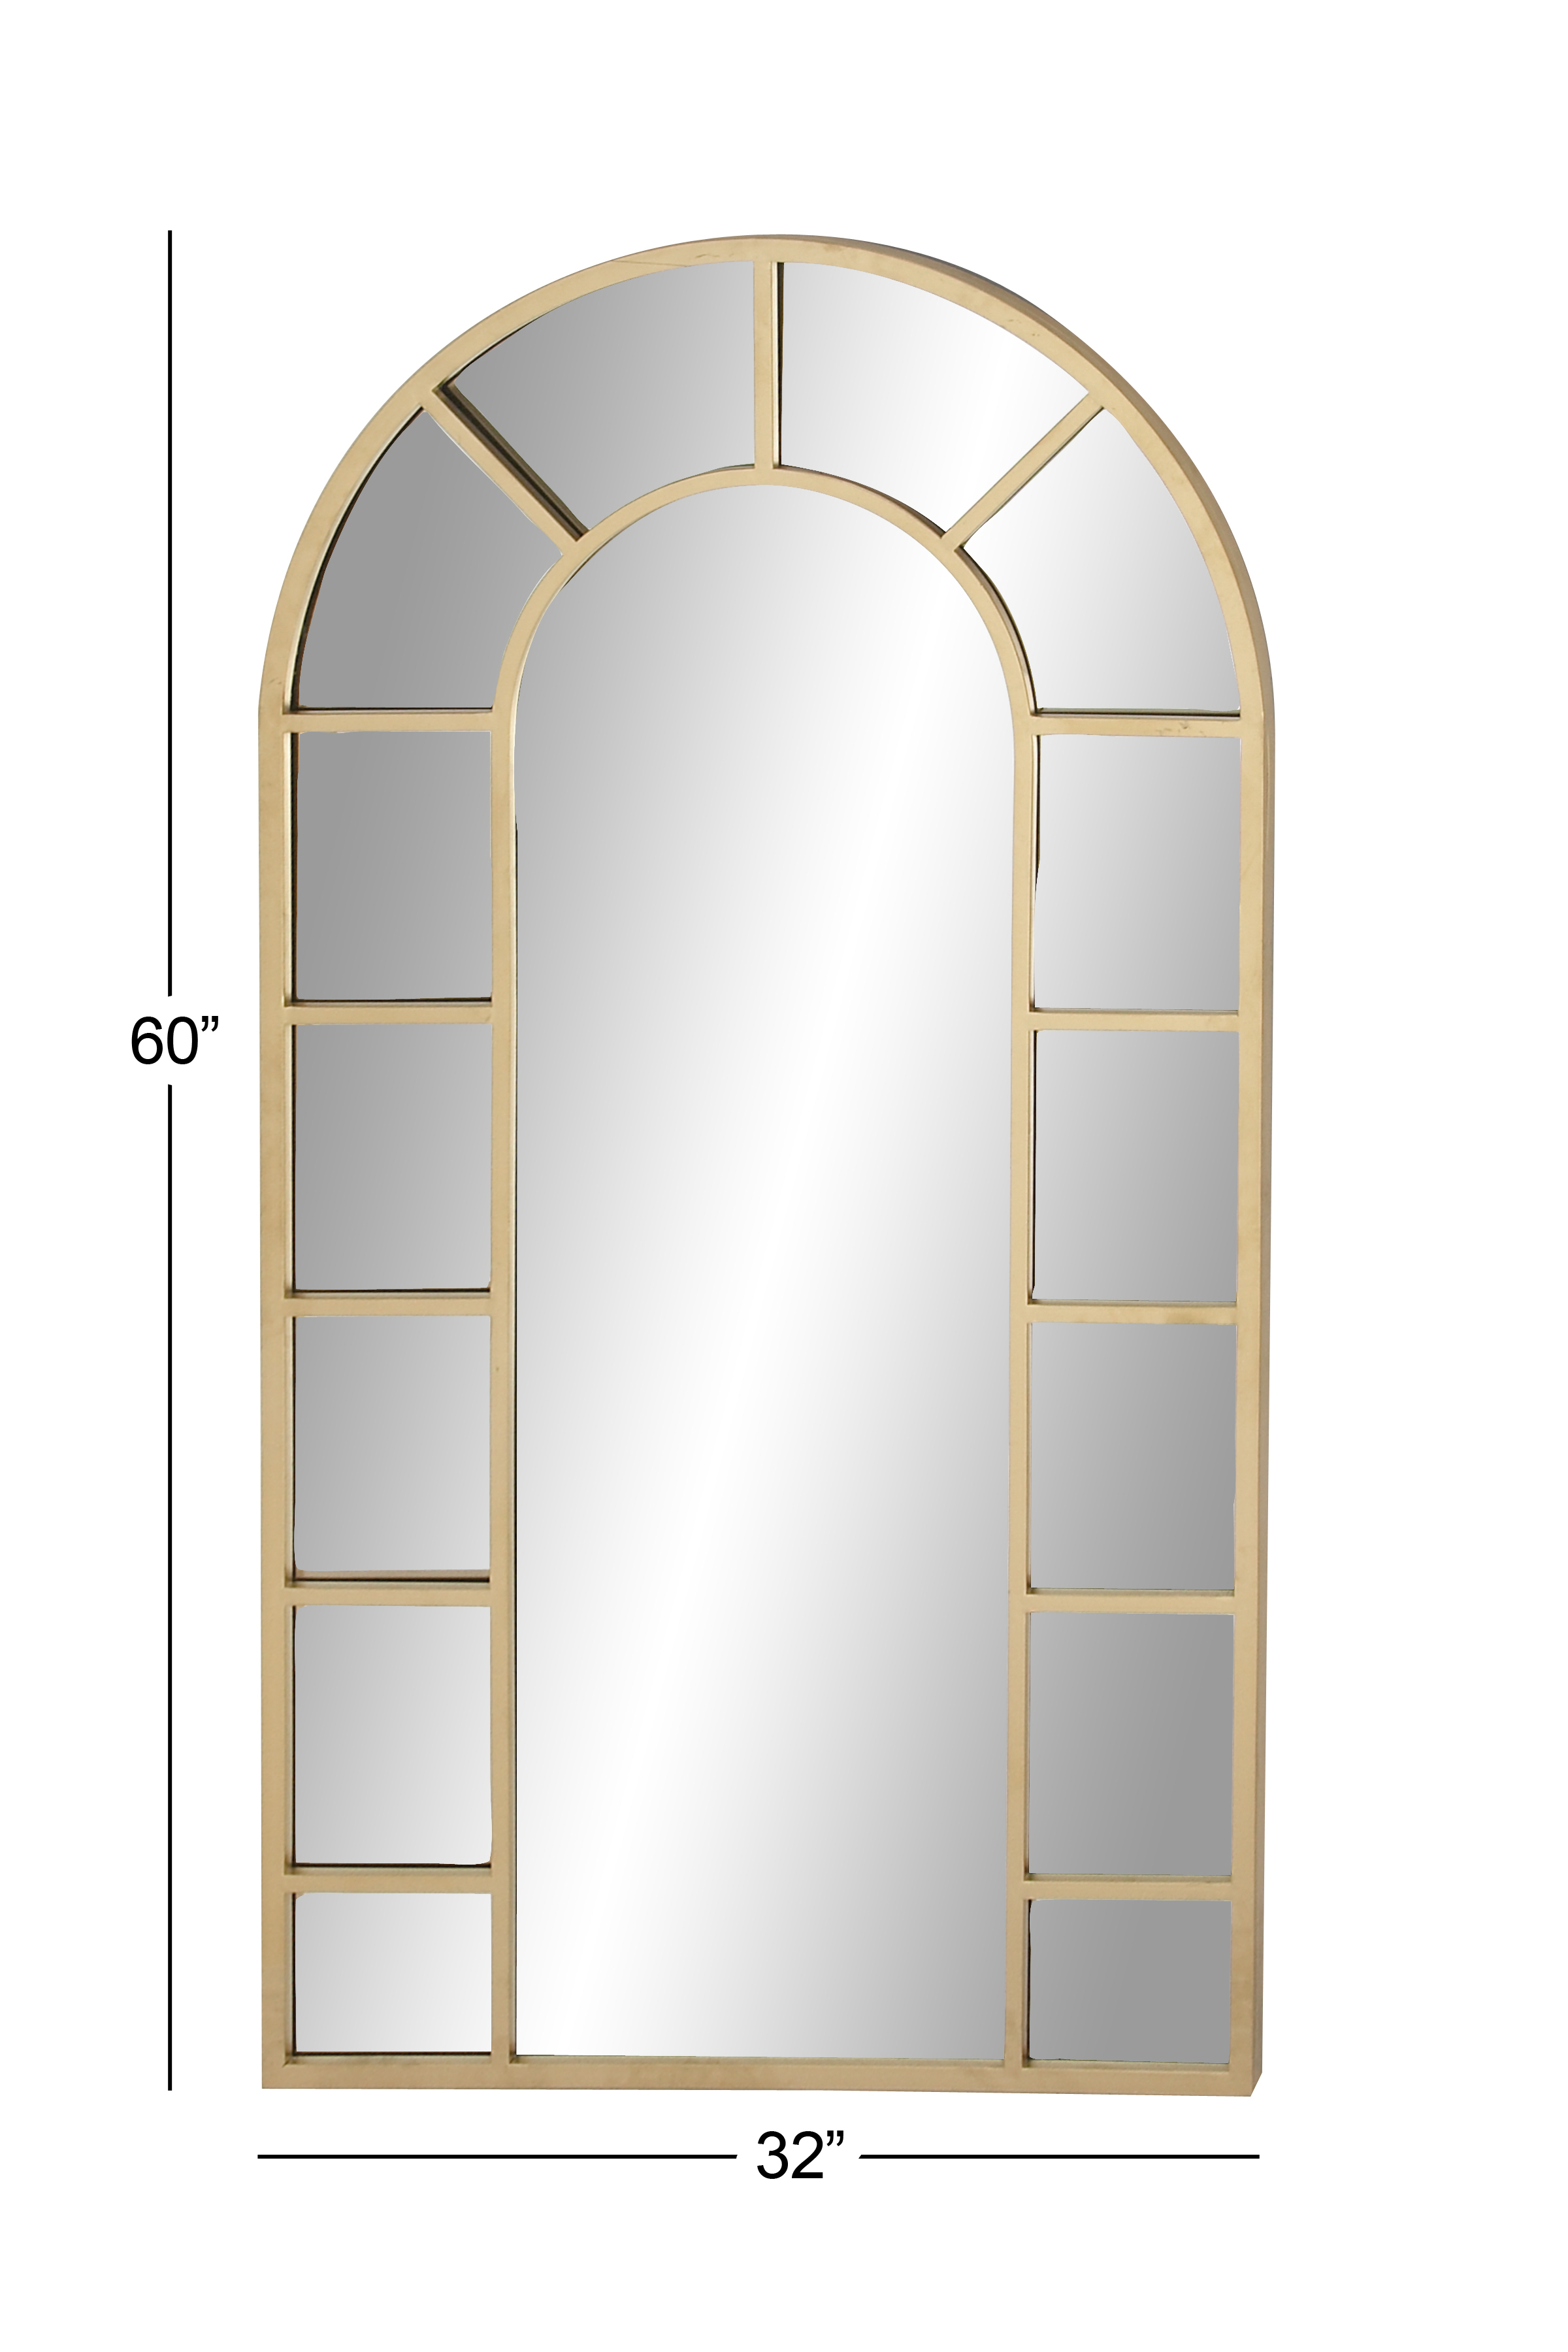 Decmode Contemporary Wood And Metal Arched Gold Wall Mirror, Gold In Arch Vertical Wall Mirrors (Image 9 of 20)